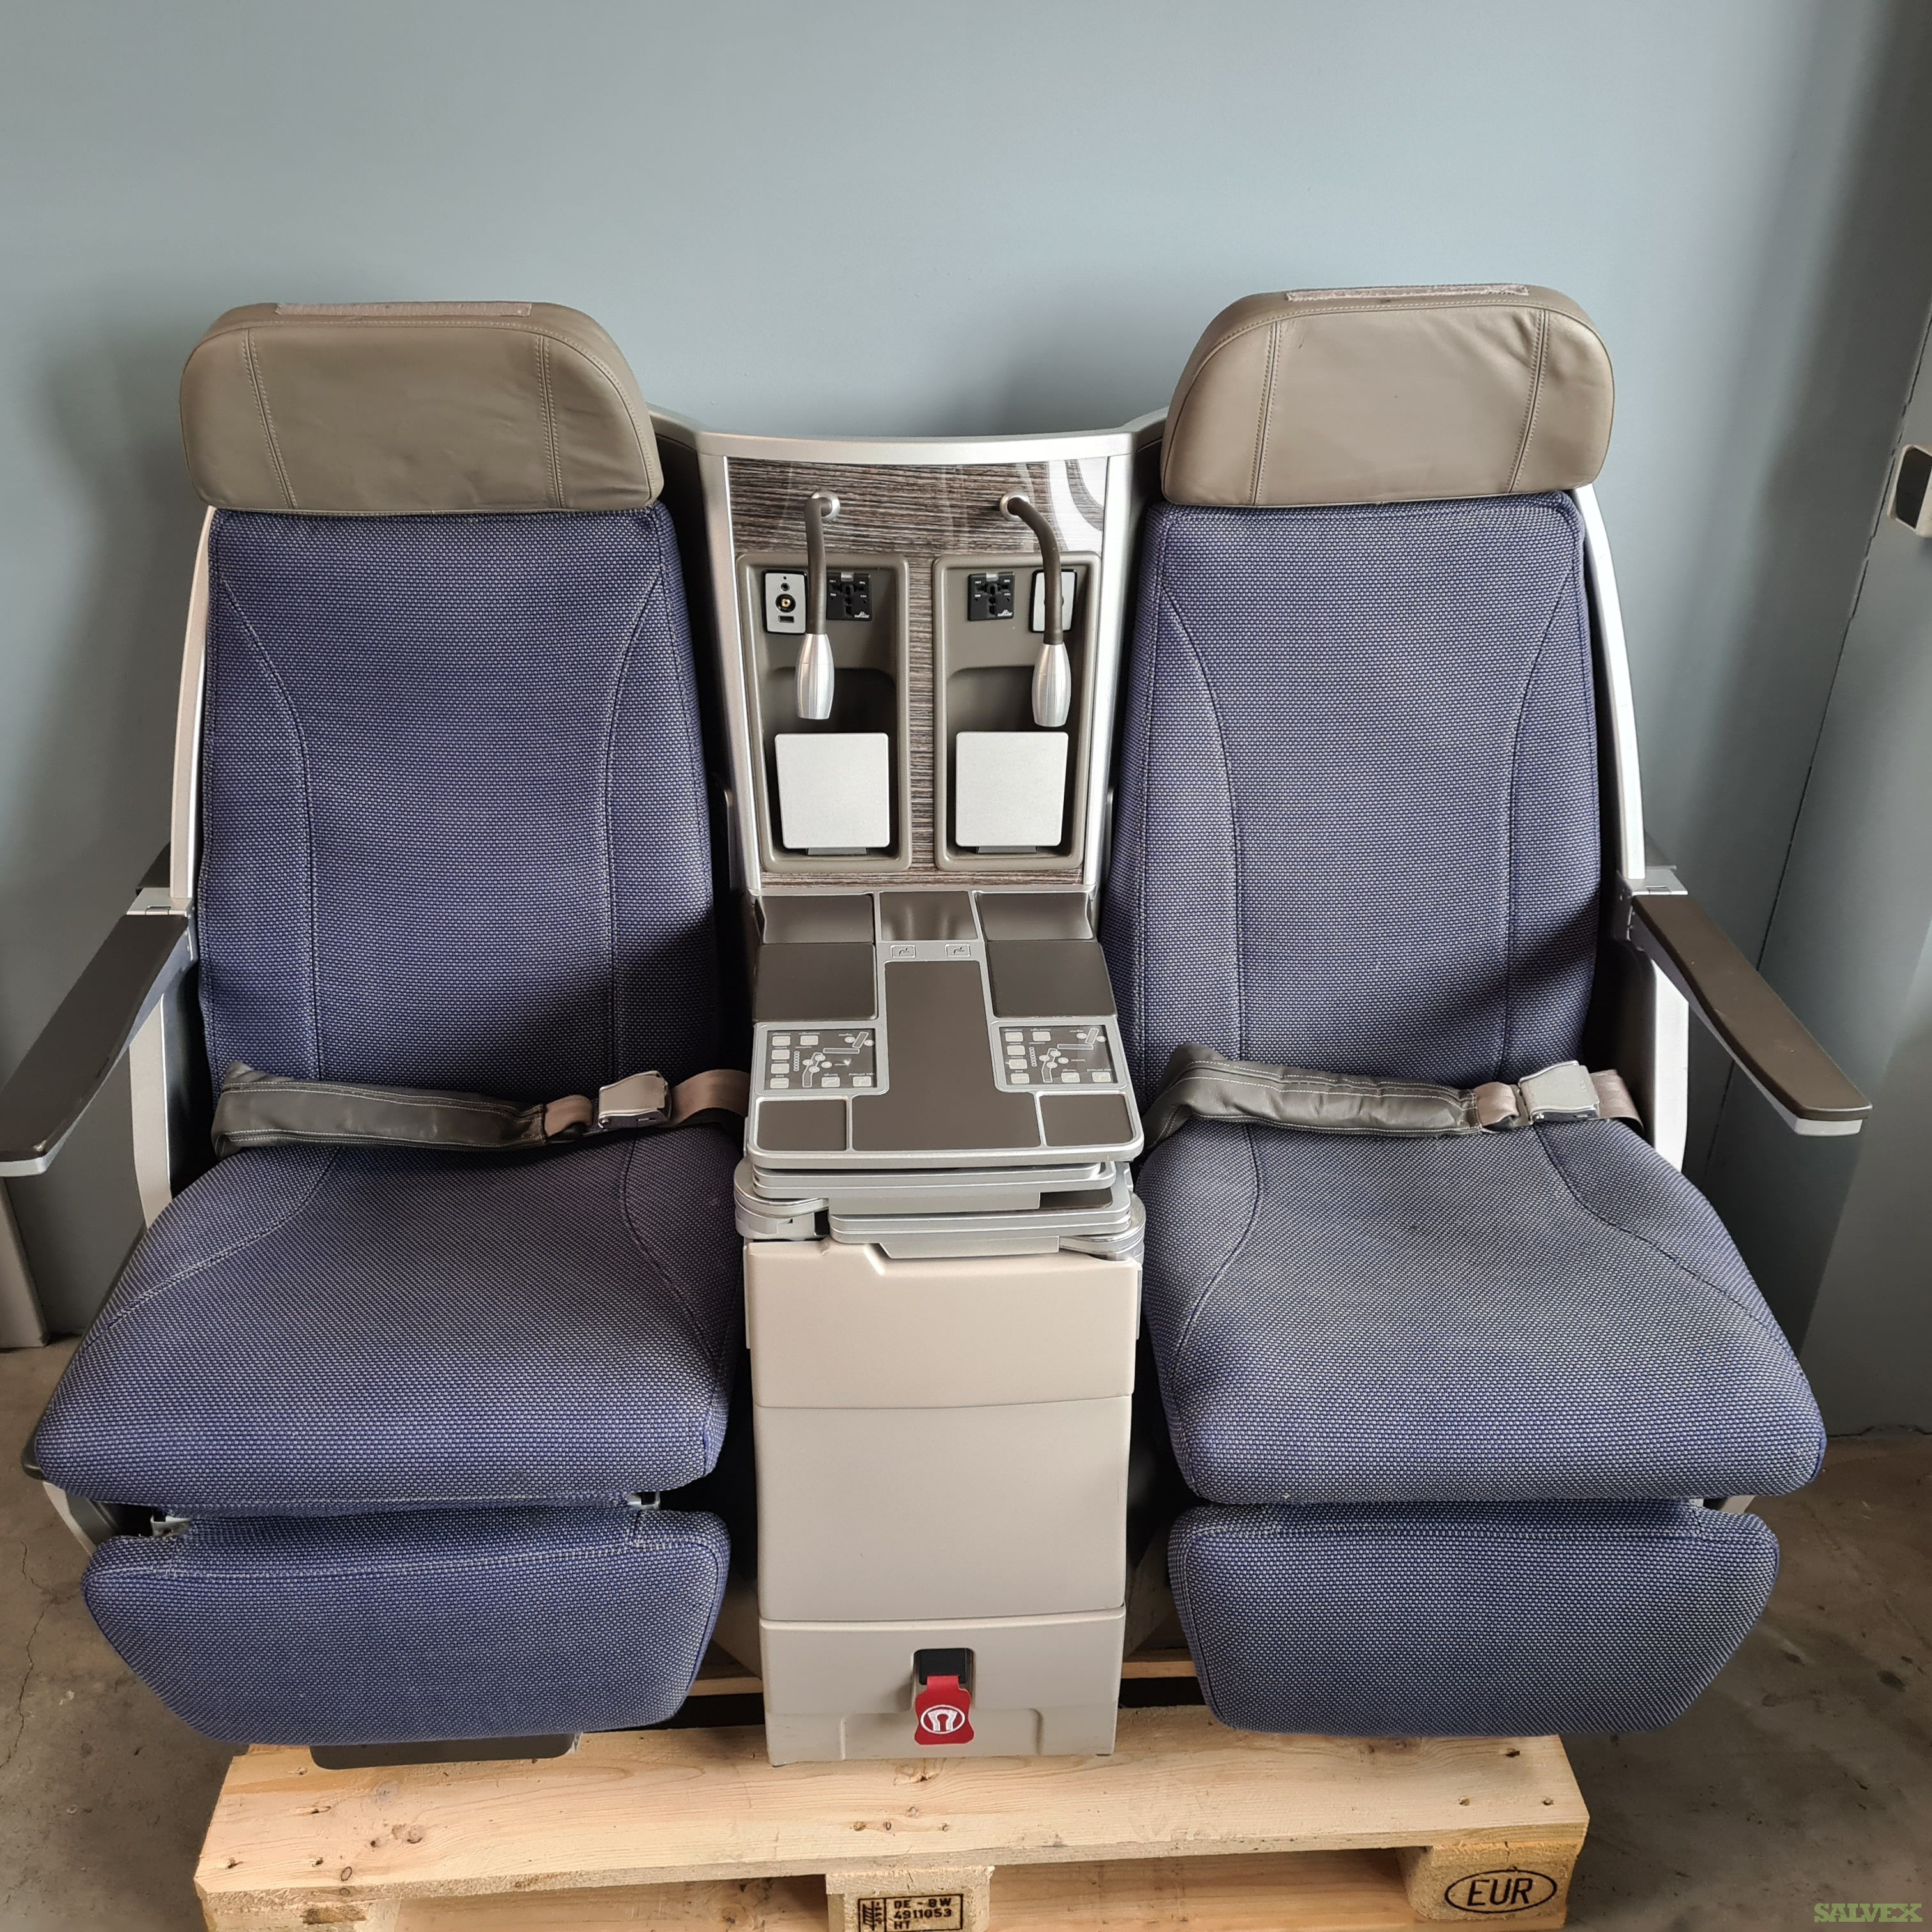 Thompson Vantage Business Class Seats - for Airbus A330/A340 (52 pax)